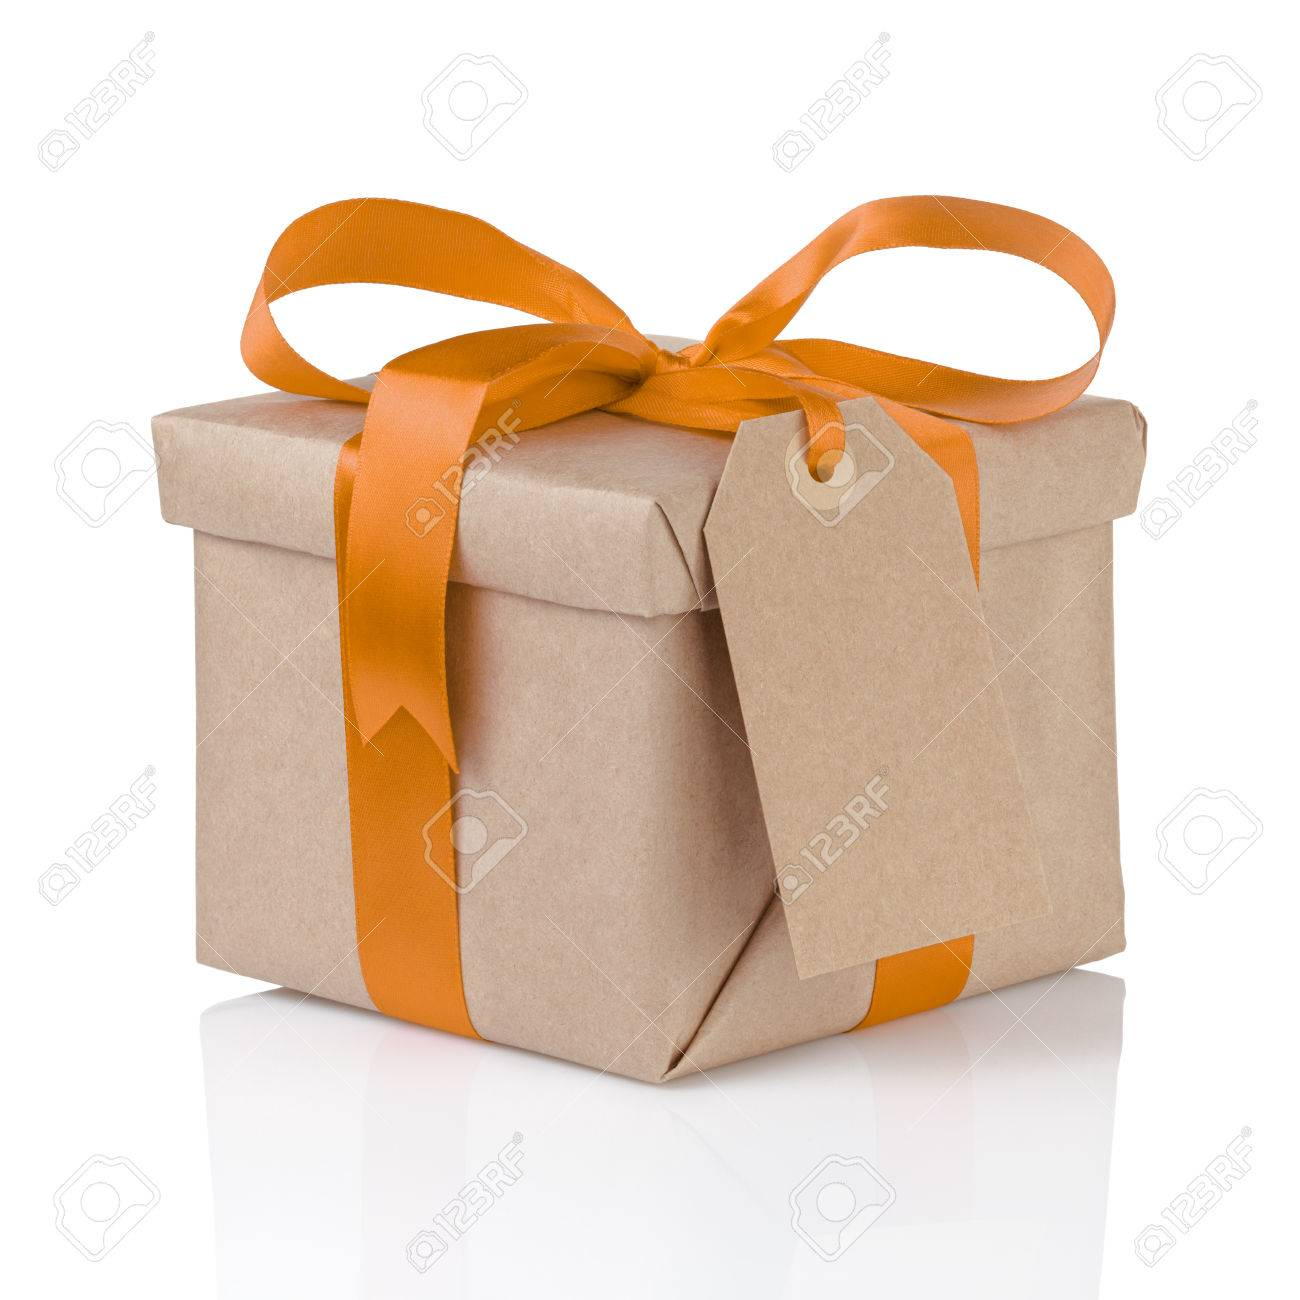 one gift christmas box wrapped with kraft paper and orange bow, isolated - 34269666